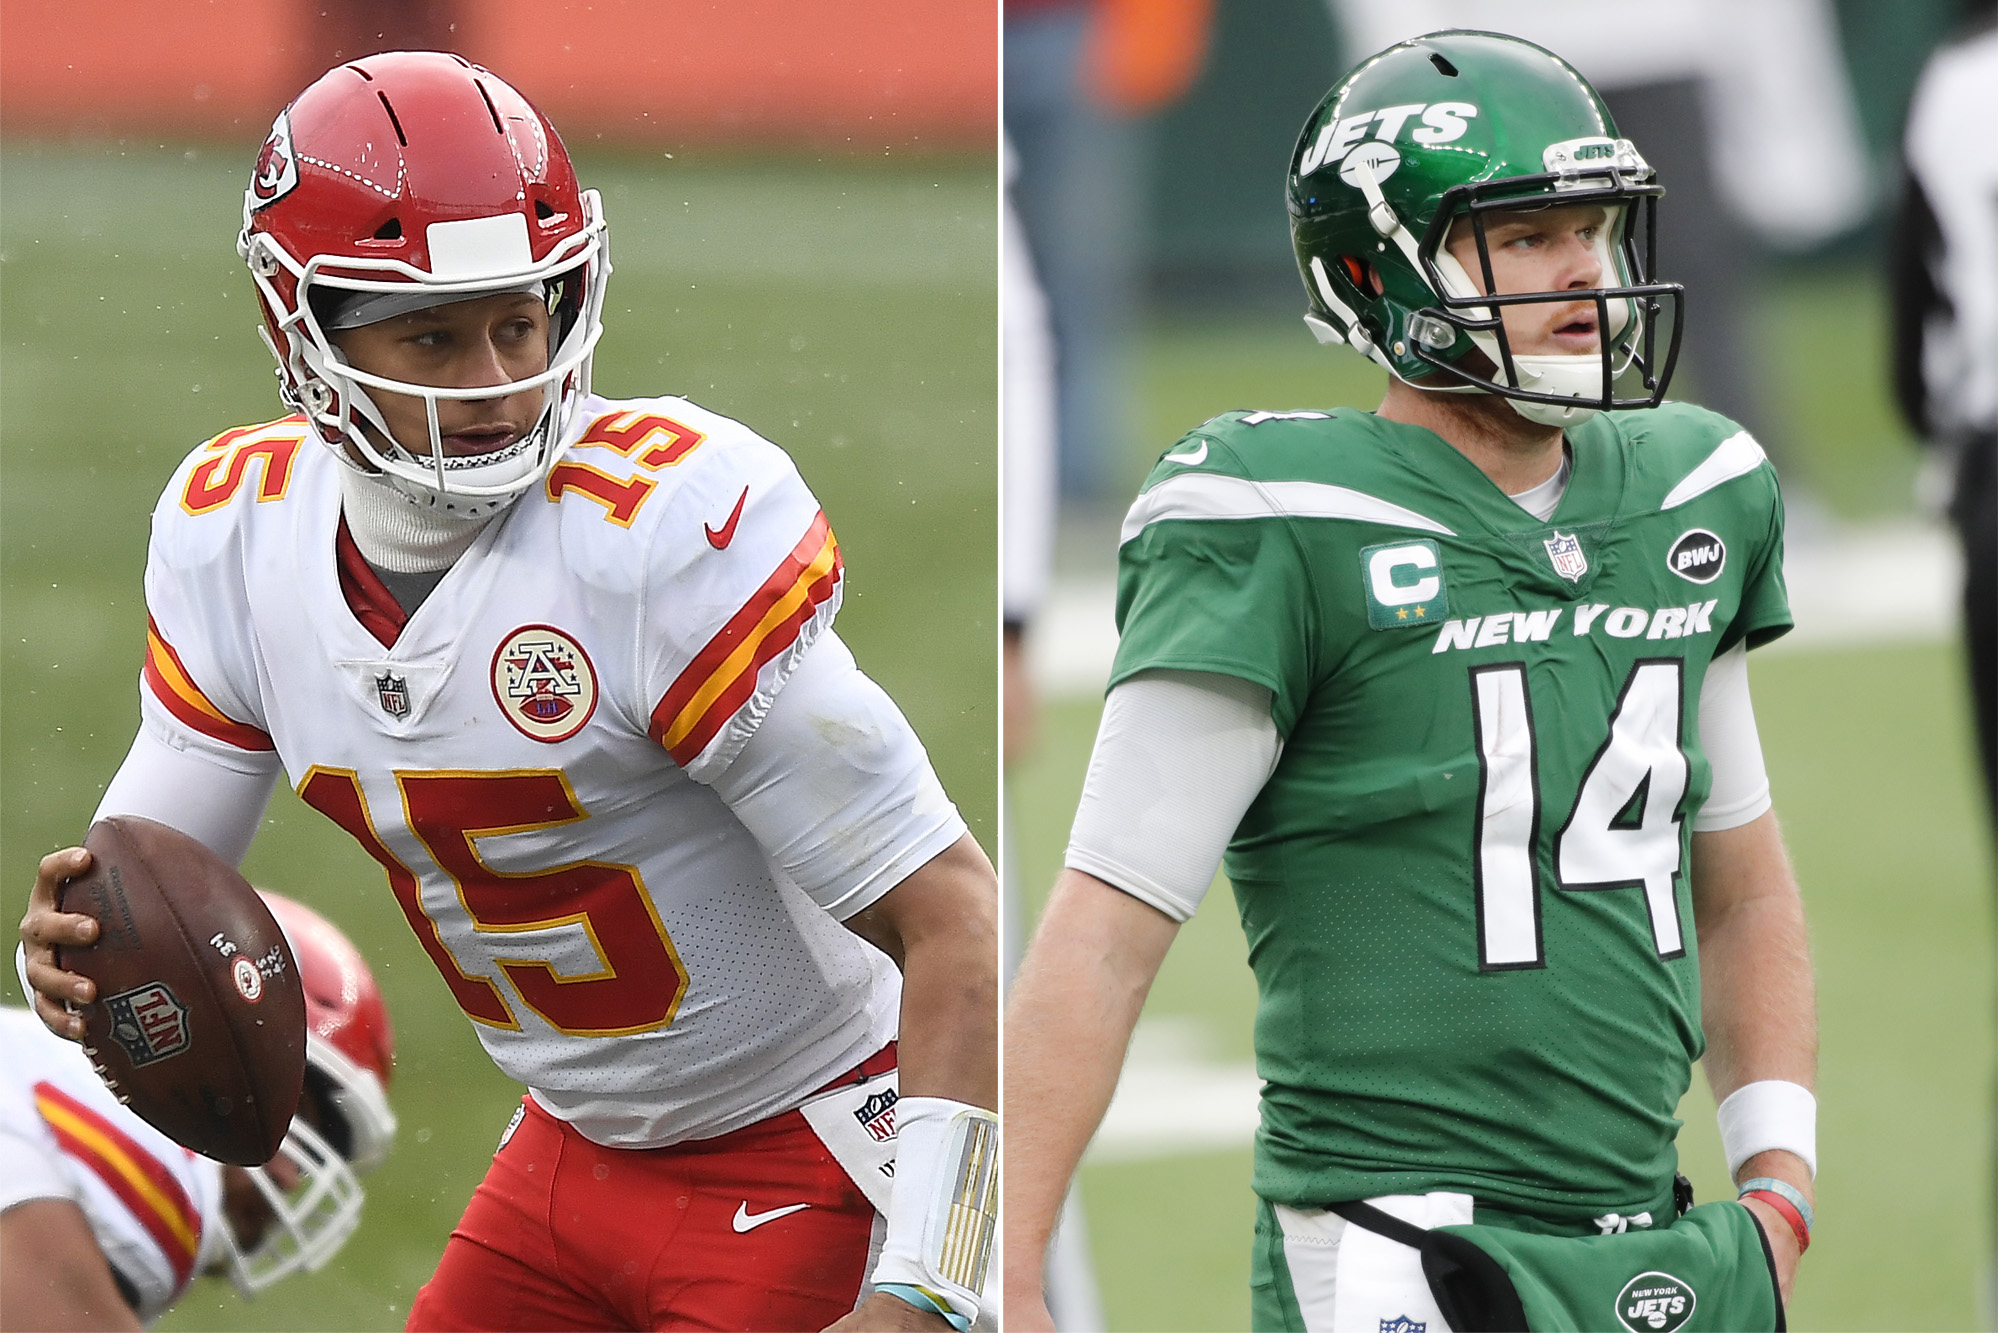 Nfl week 12 ny post betting lines totelepep betting